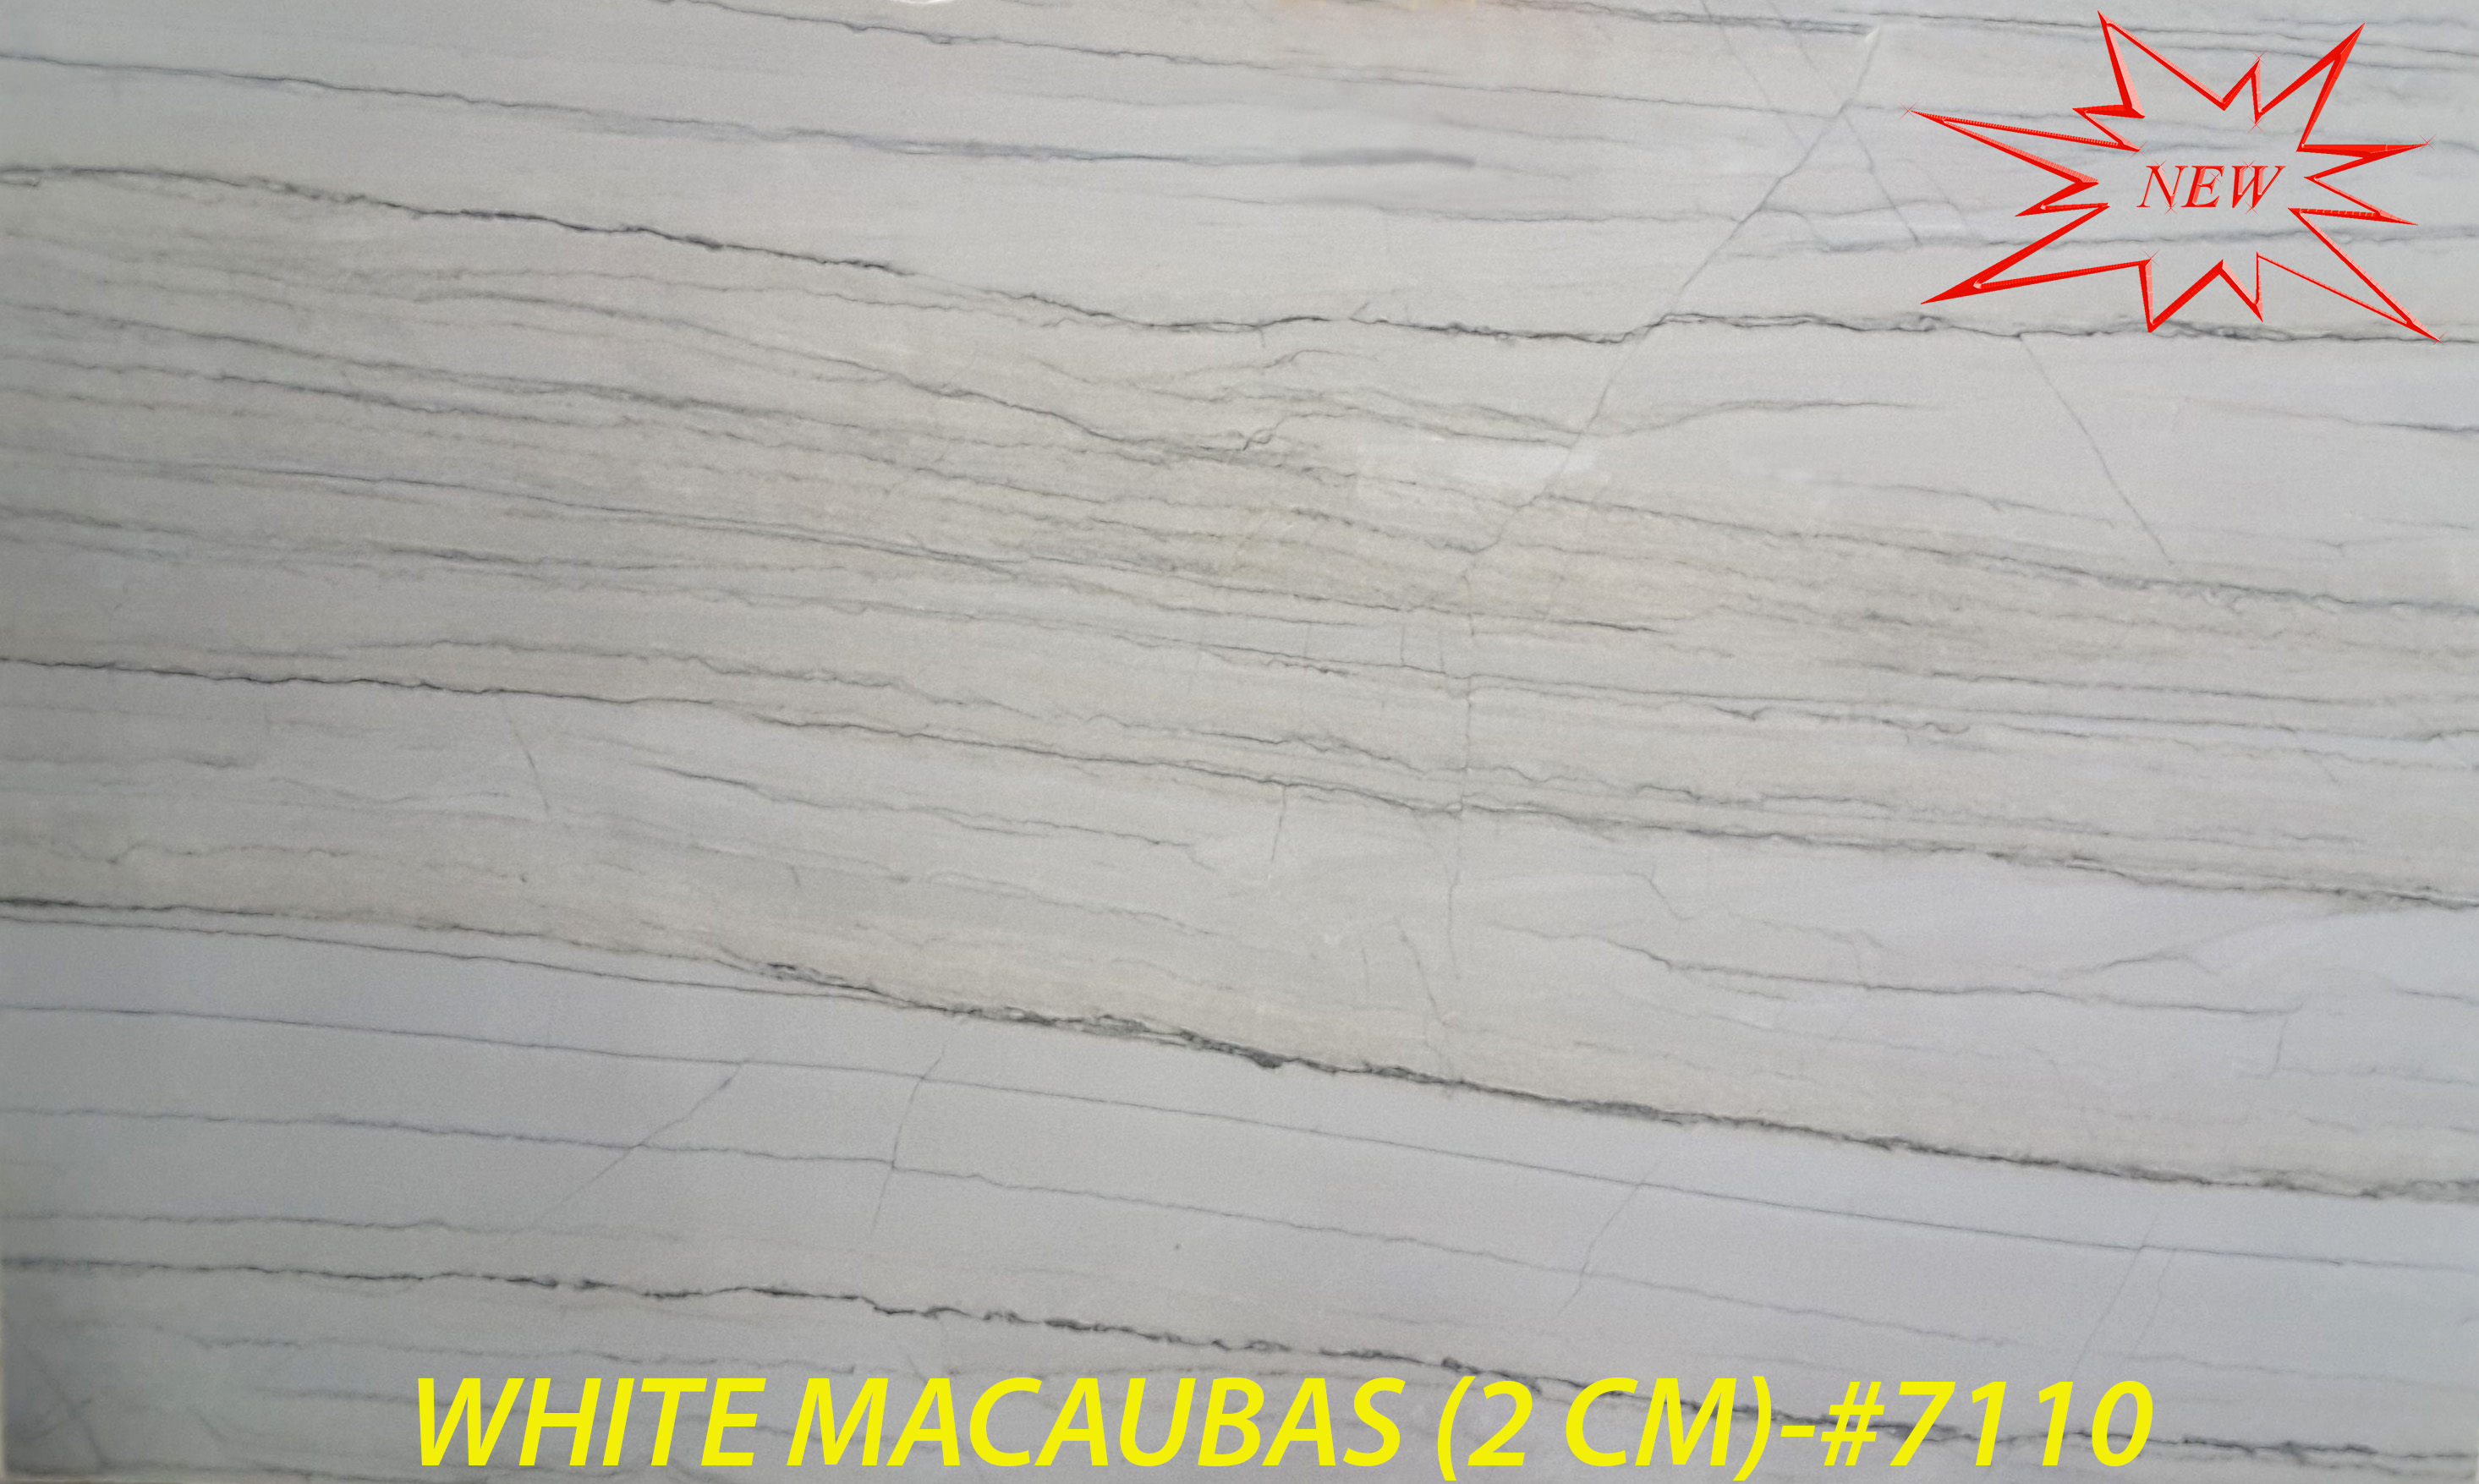 WHITE MACAUBAS (2 CM)-#7110-RED